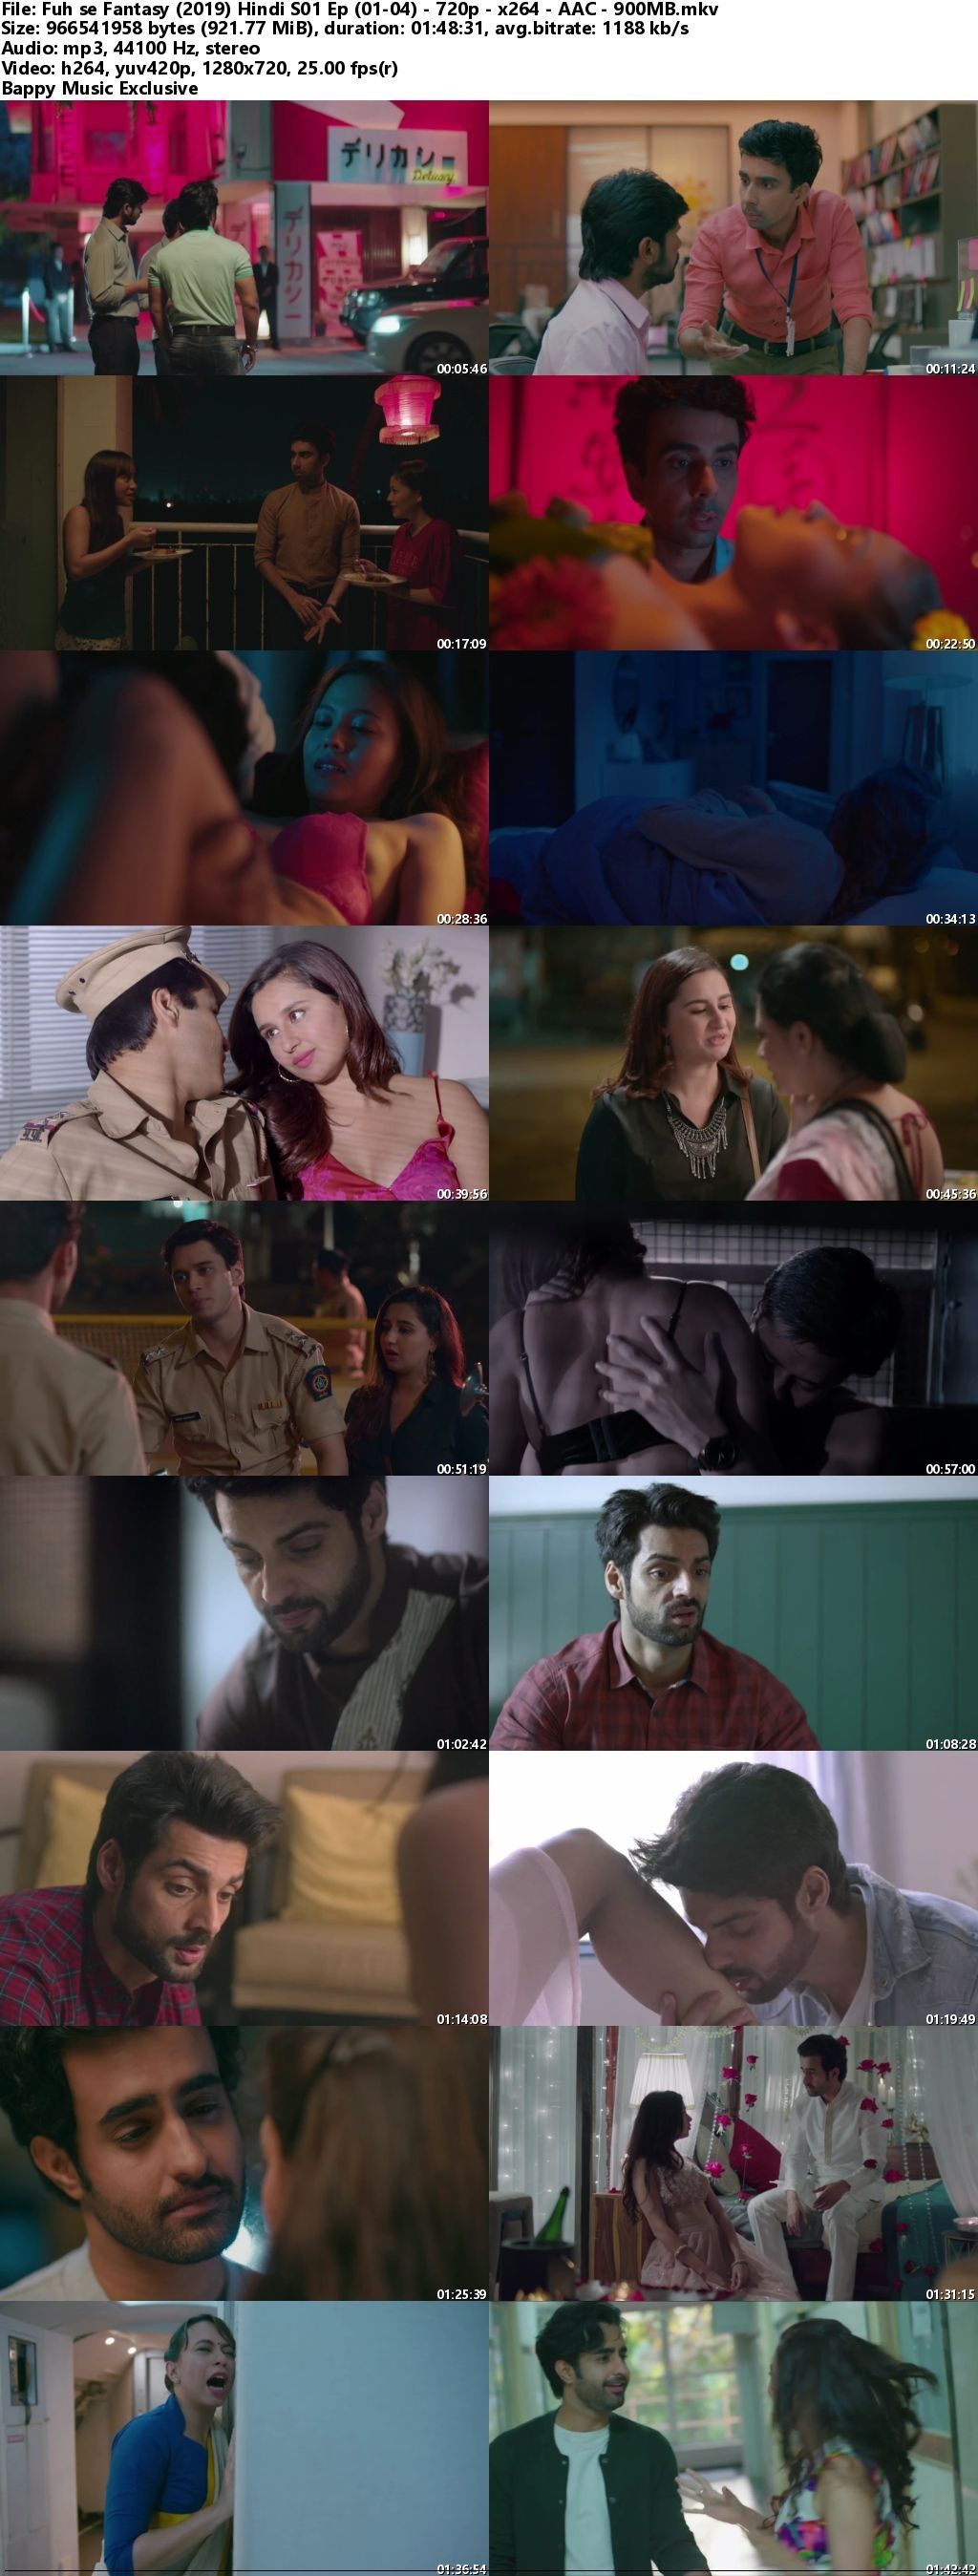 18+ Fuh se Fantasy (2019) Hindi S01 Hot Web Series 720p HDRip 700MB Download